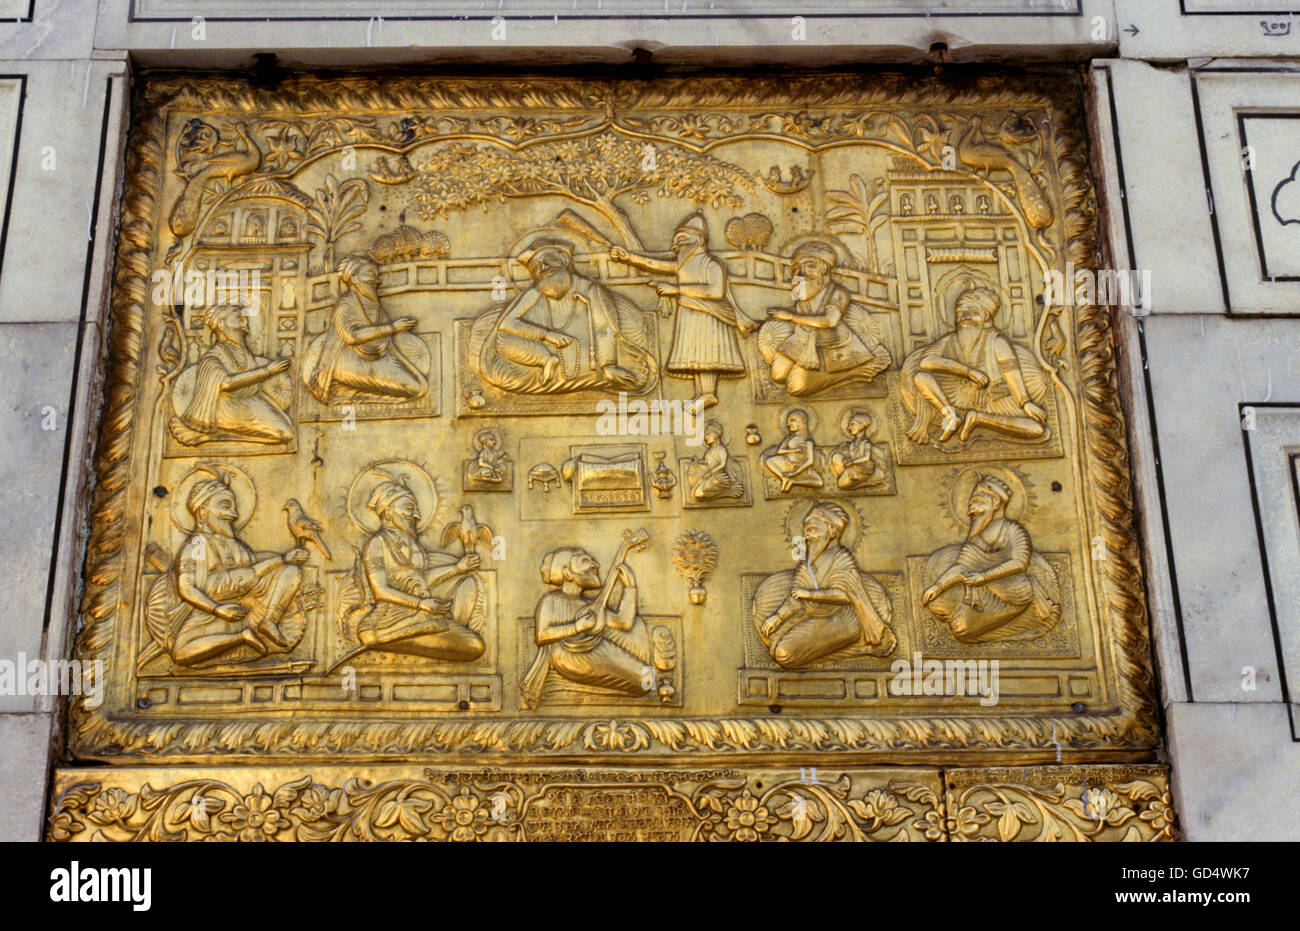 Carved Wall Golden Temple Amritsar Stock Photos & Carved Wall Golden ...